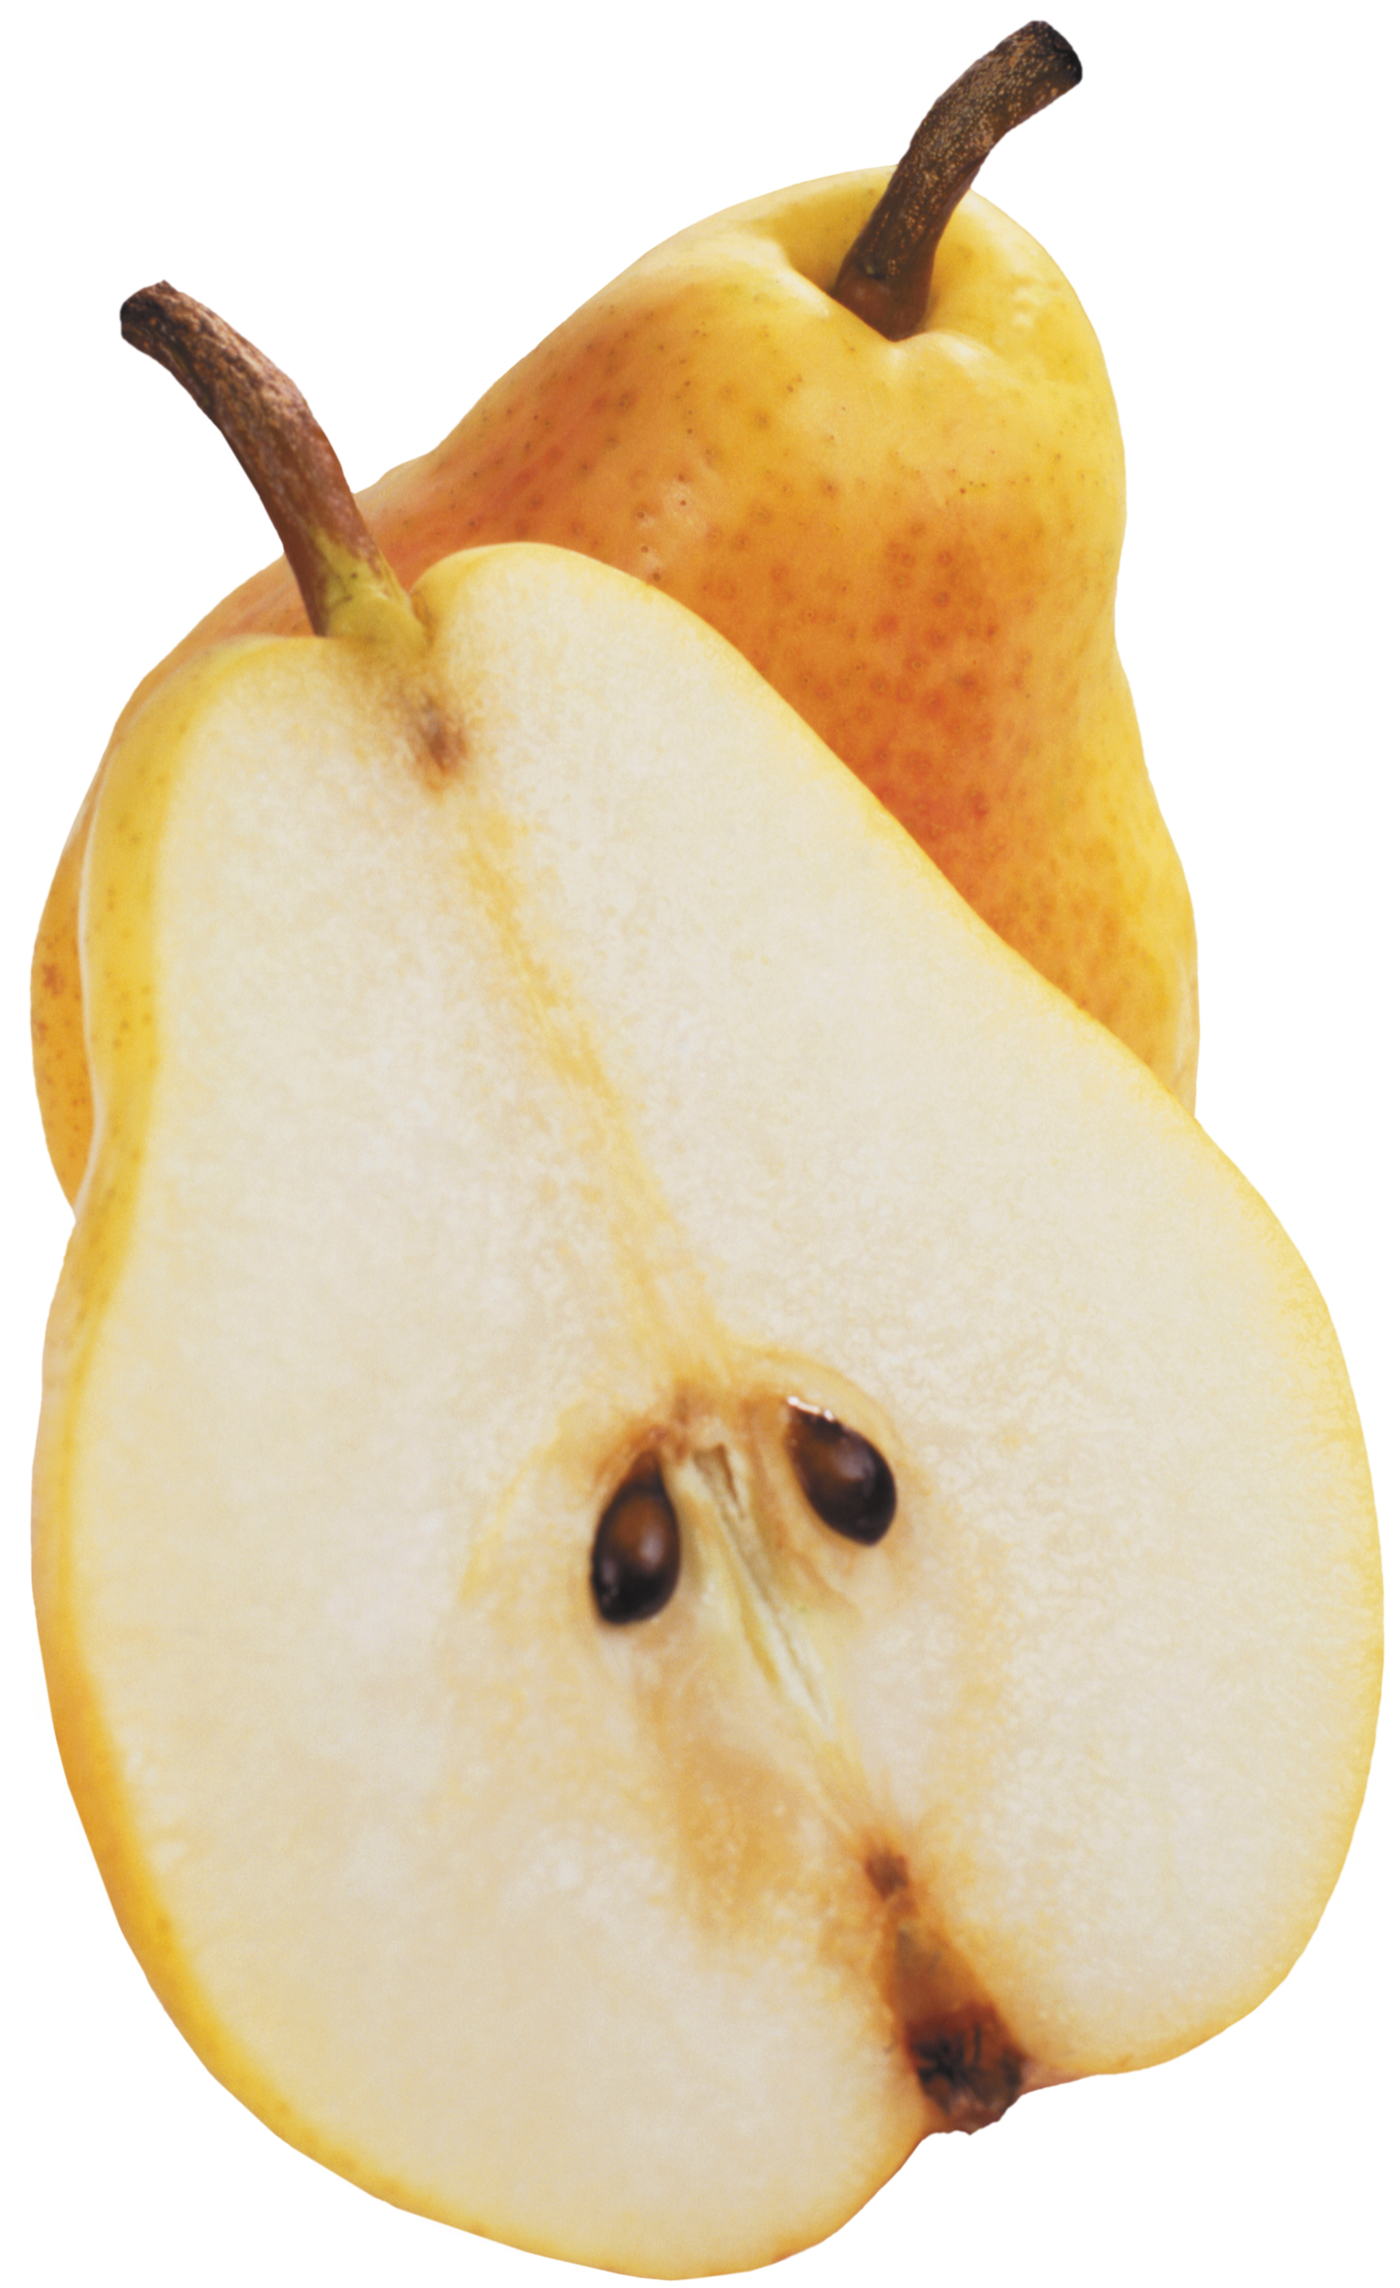 Pear png picture fruit. Vegetables clipart fair